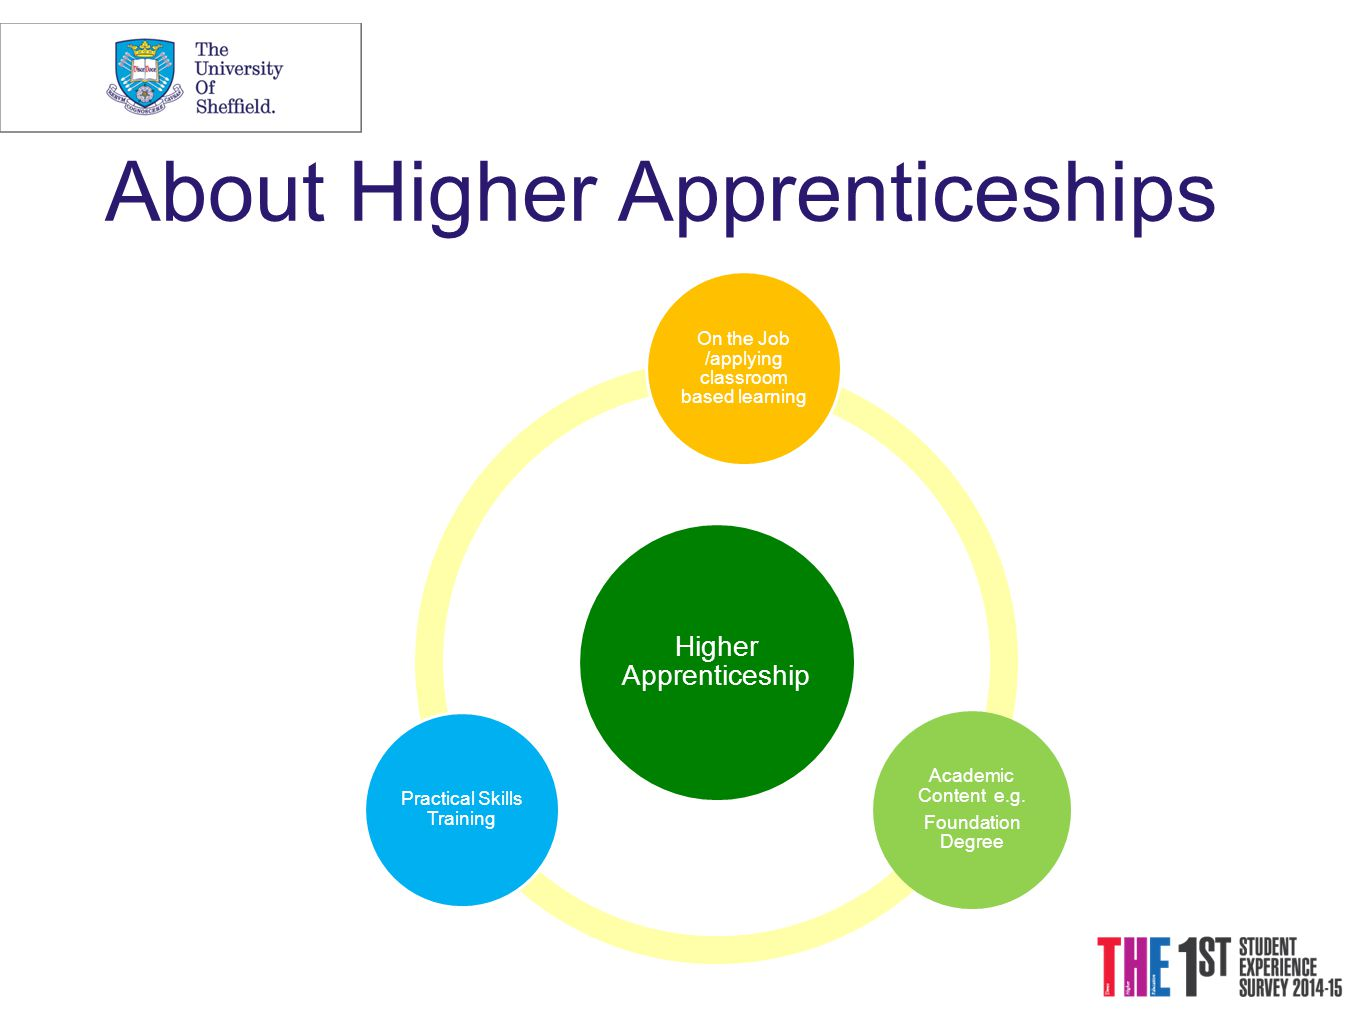 About Higher Apprenticeships Higher Apprenticeship On the Job /applying classroom based learning Academic Content e.g.